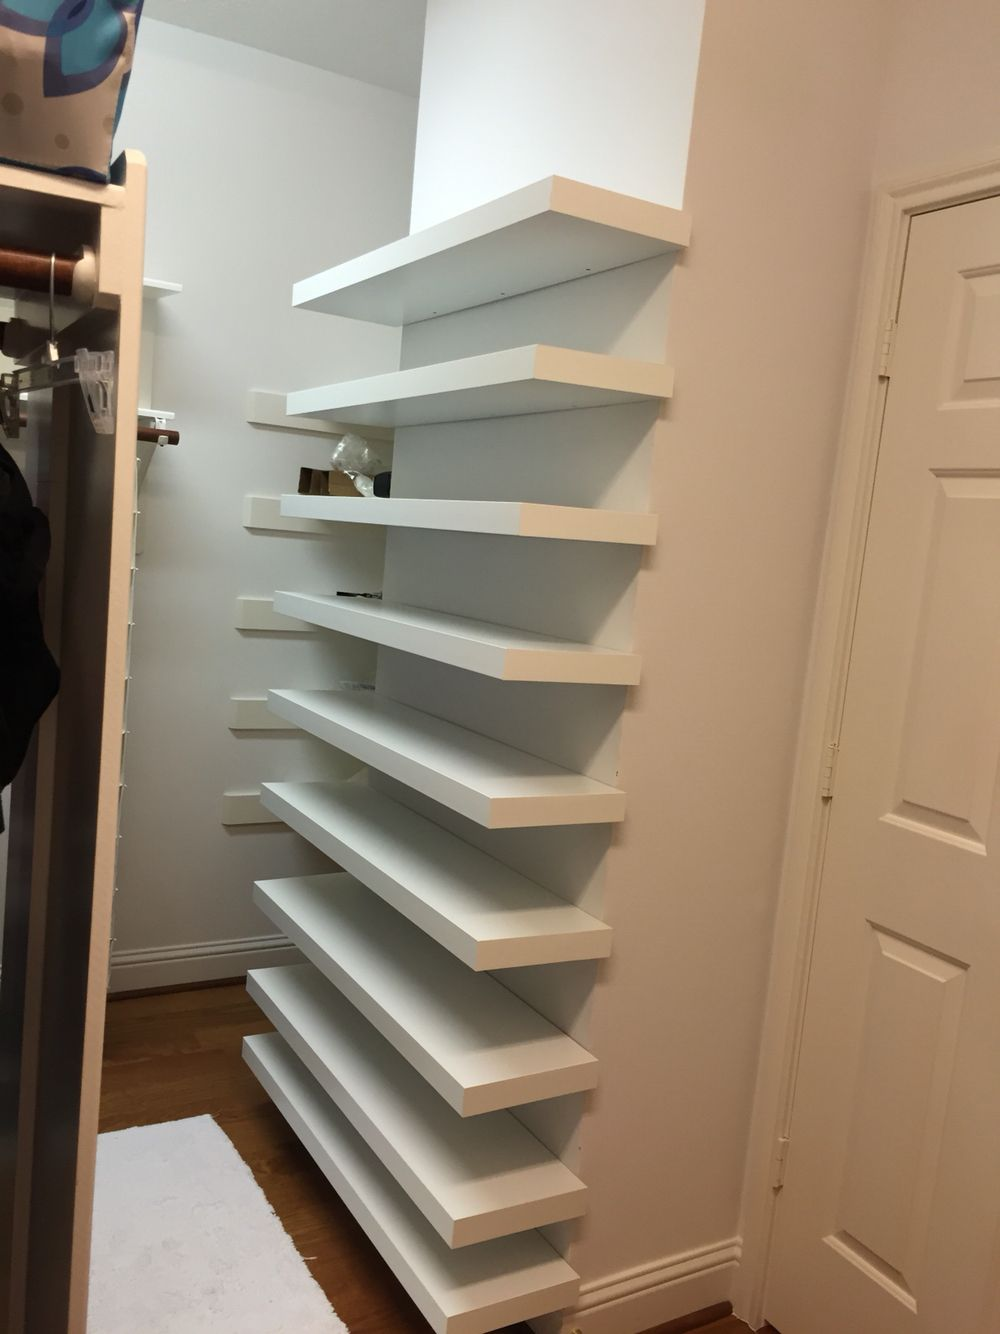 Shoe Shelves In Closet For The Home Pinterest